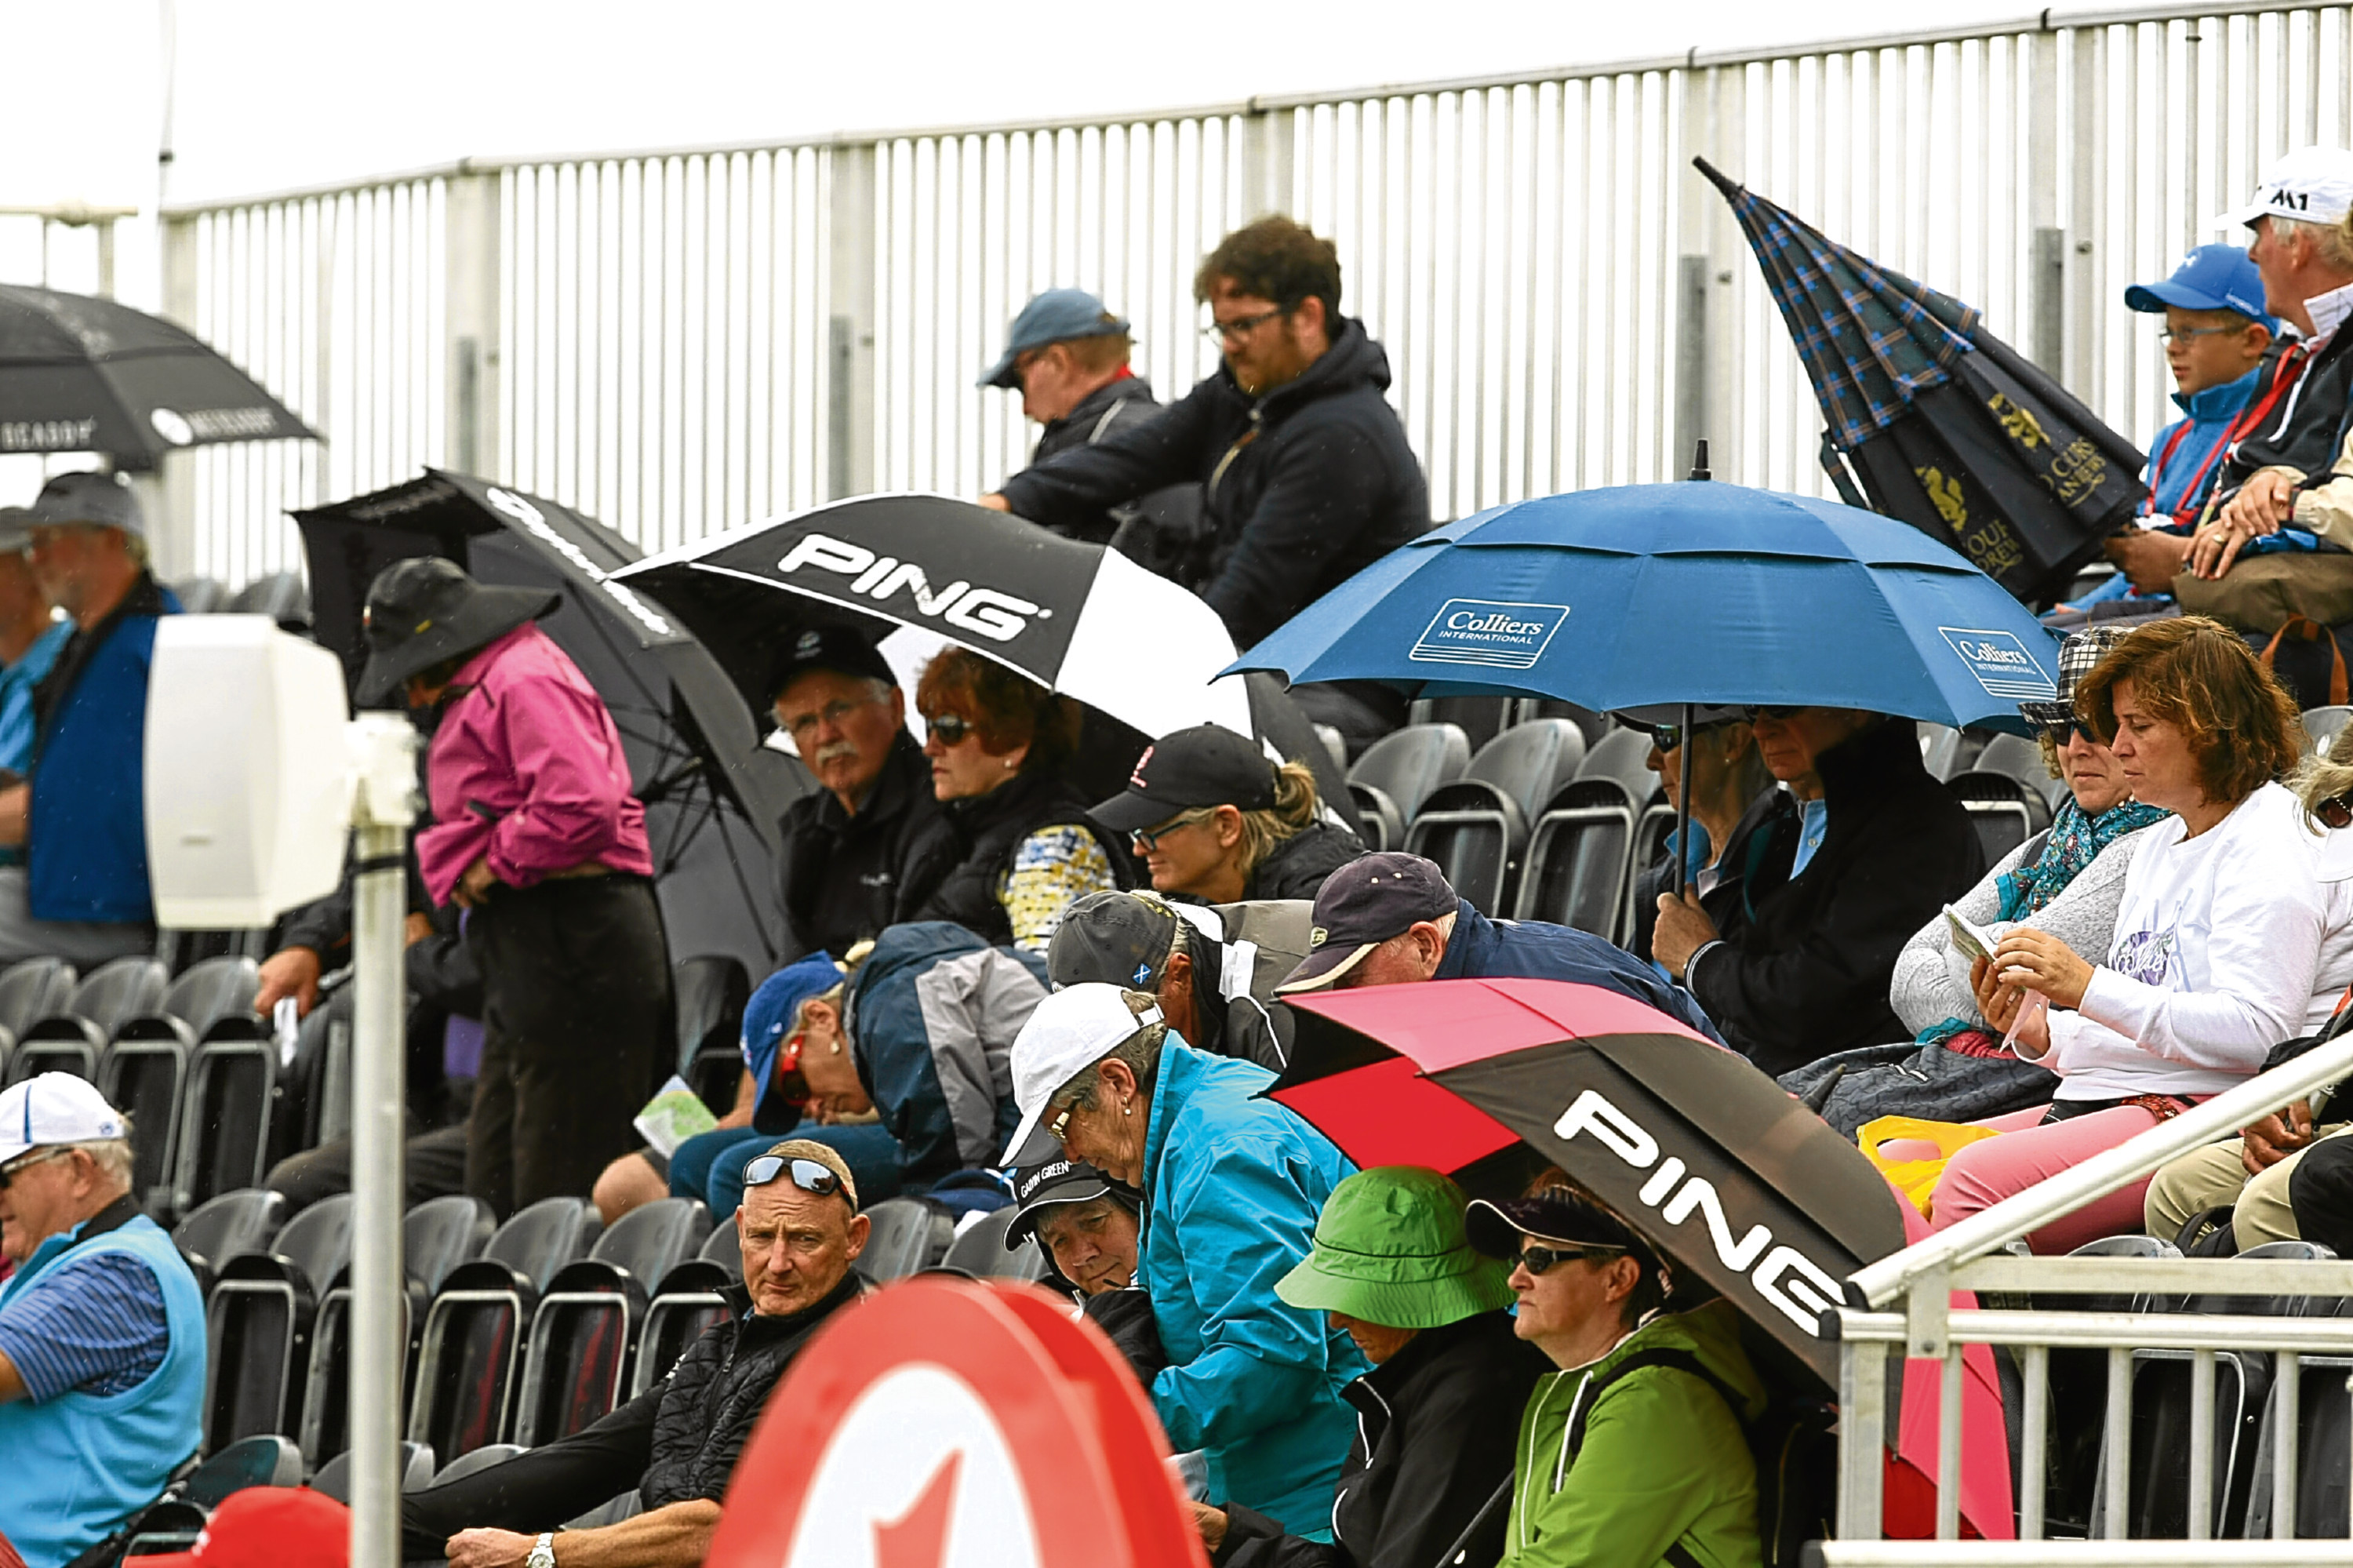 Golf fans take shelter from the rain again during the Women's British Open in high summer in Scotland.